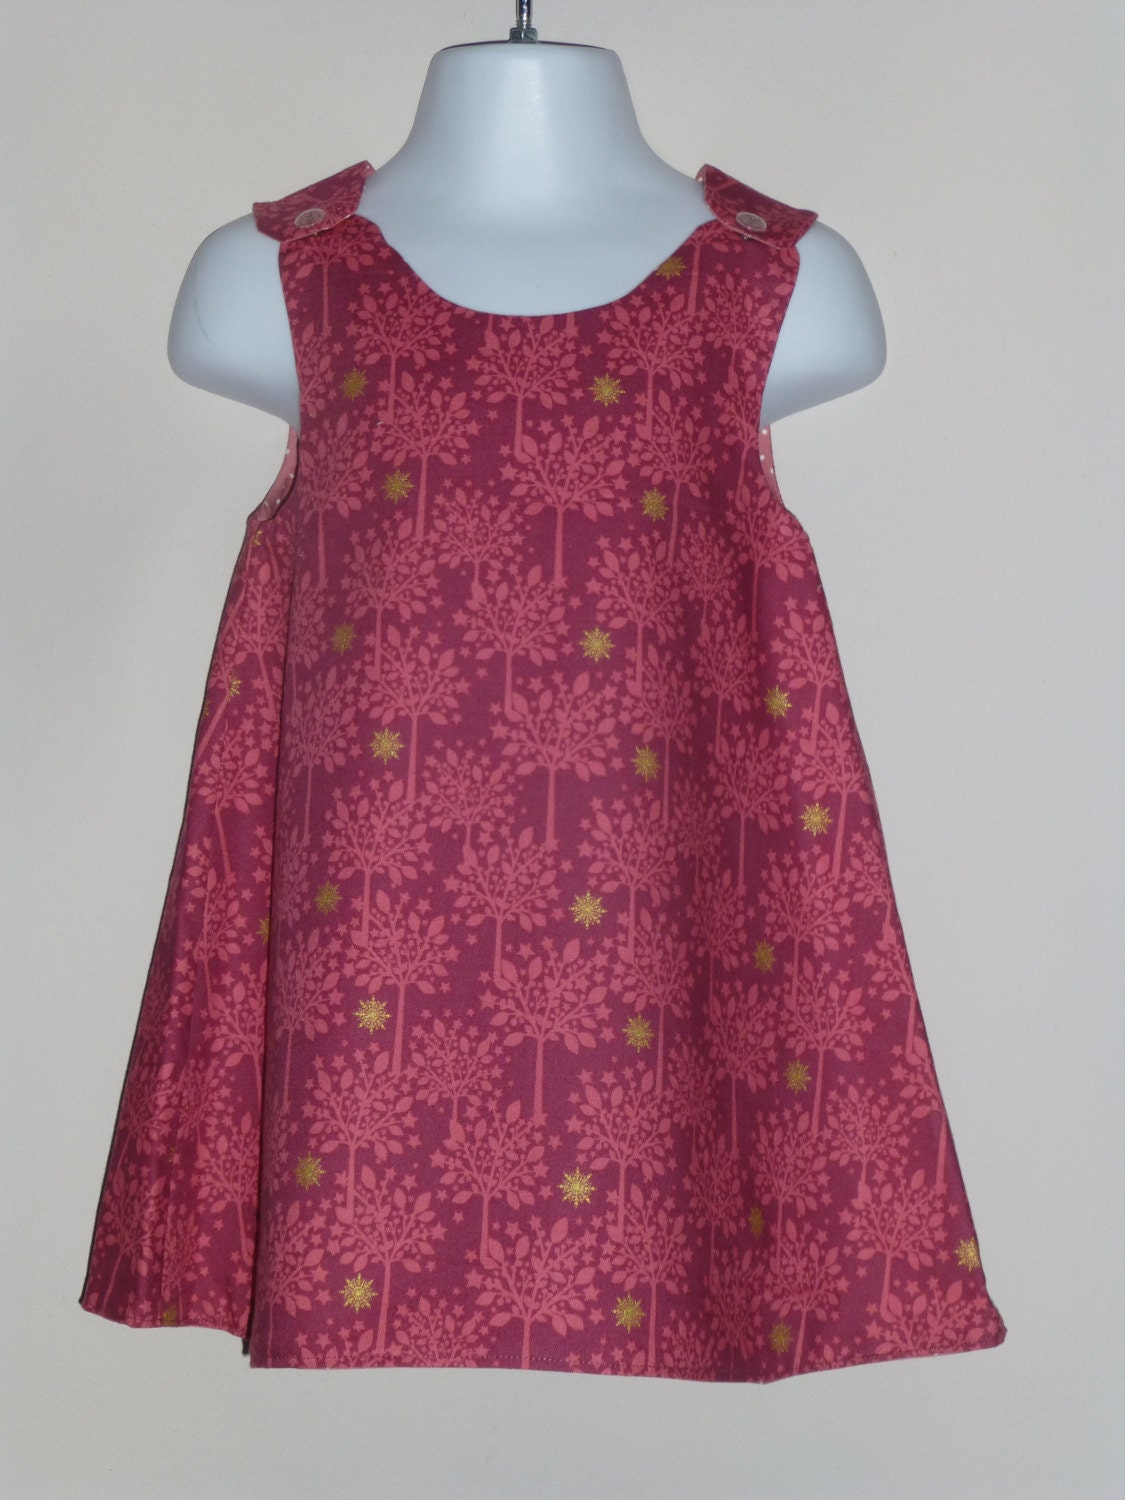 Pink A line dress pink spotted dress size 3 years one off dress reversible dress pinafore dress A line dress 3rd birthday present